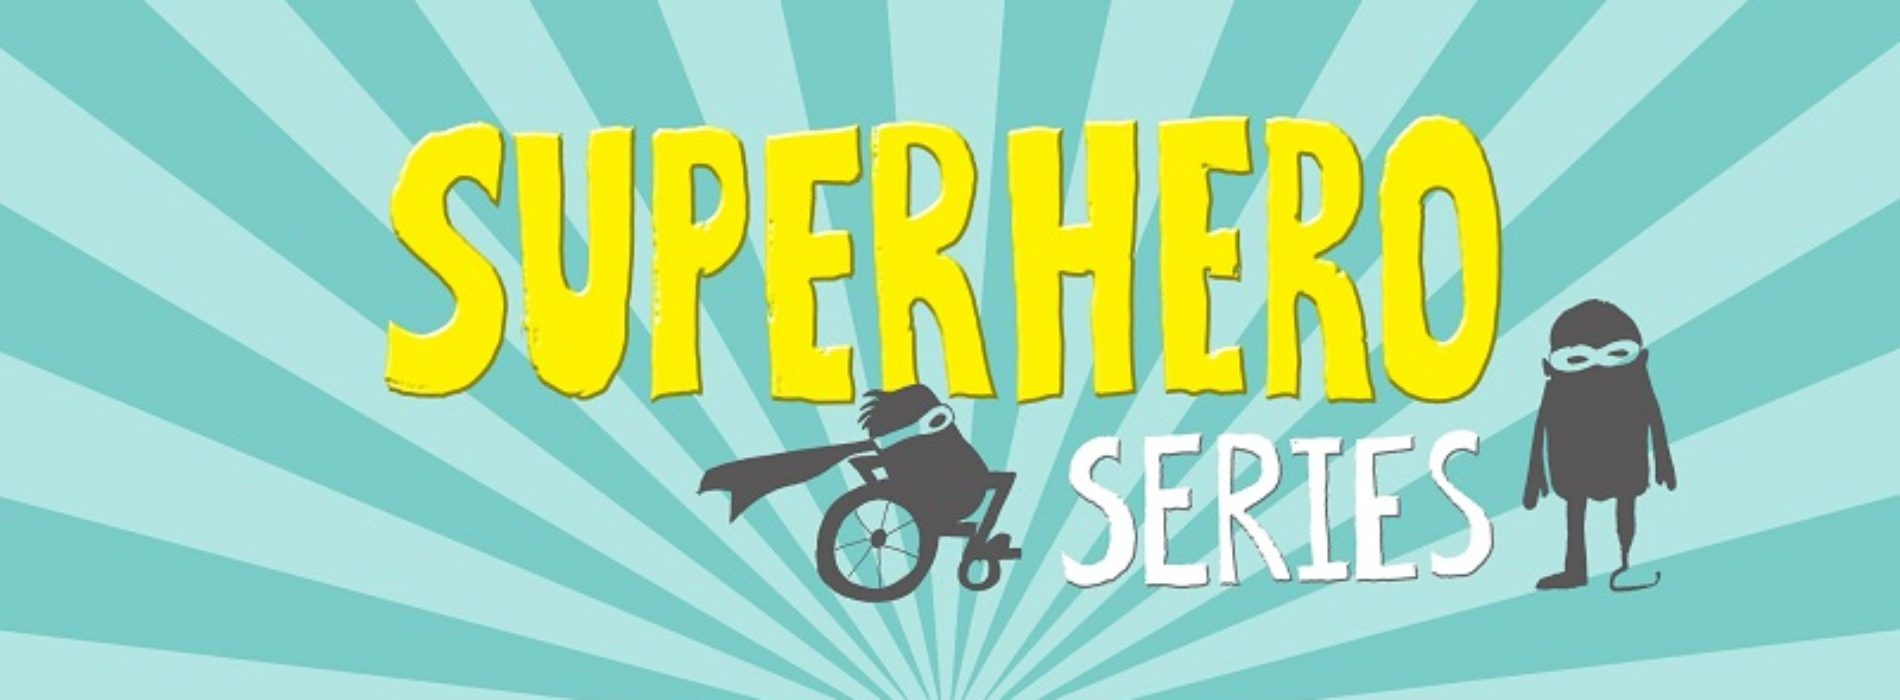 Superhero Series: new disability sporting event for everyone